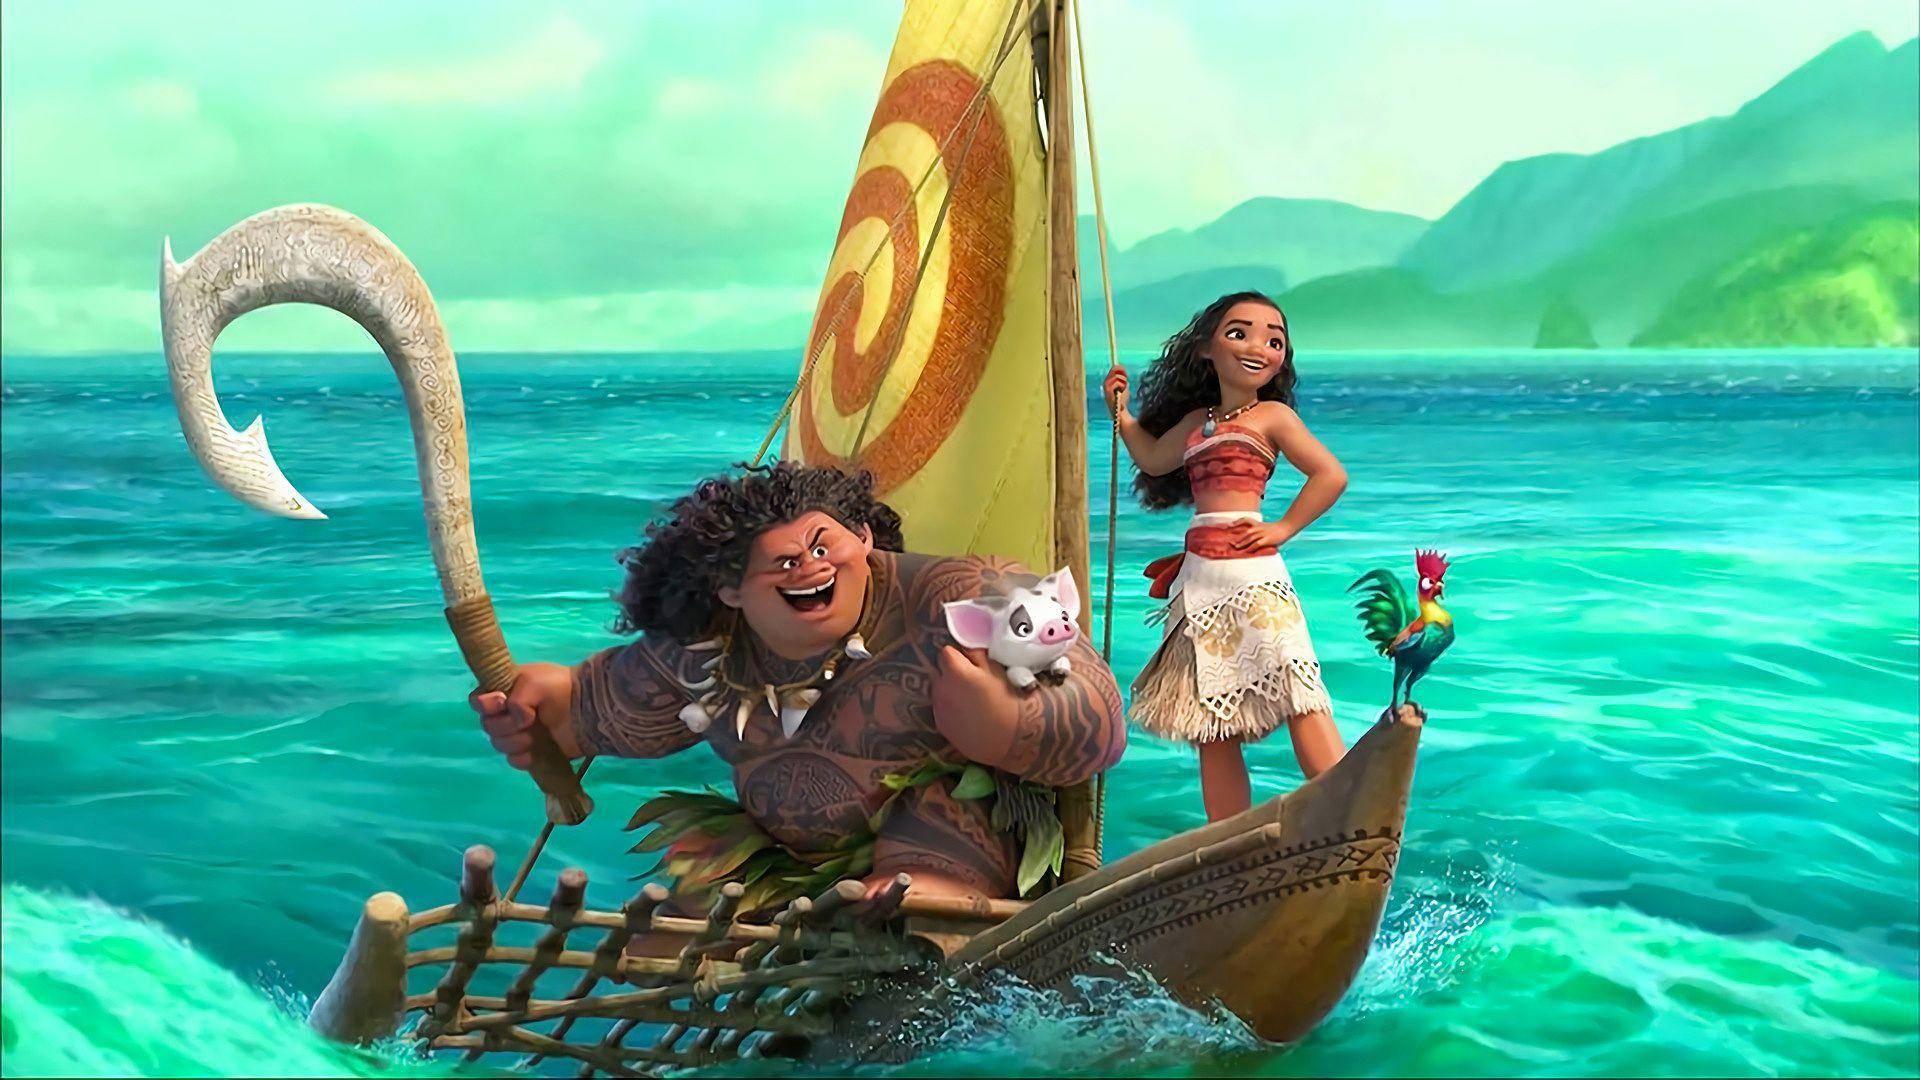 Moana 2016 Disney Animated Movie Wallpaper #17233